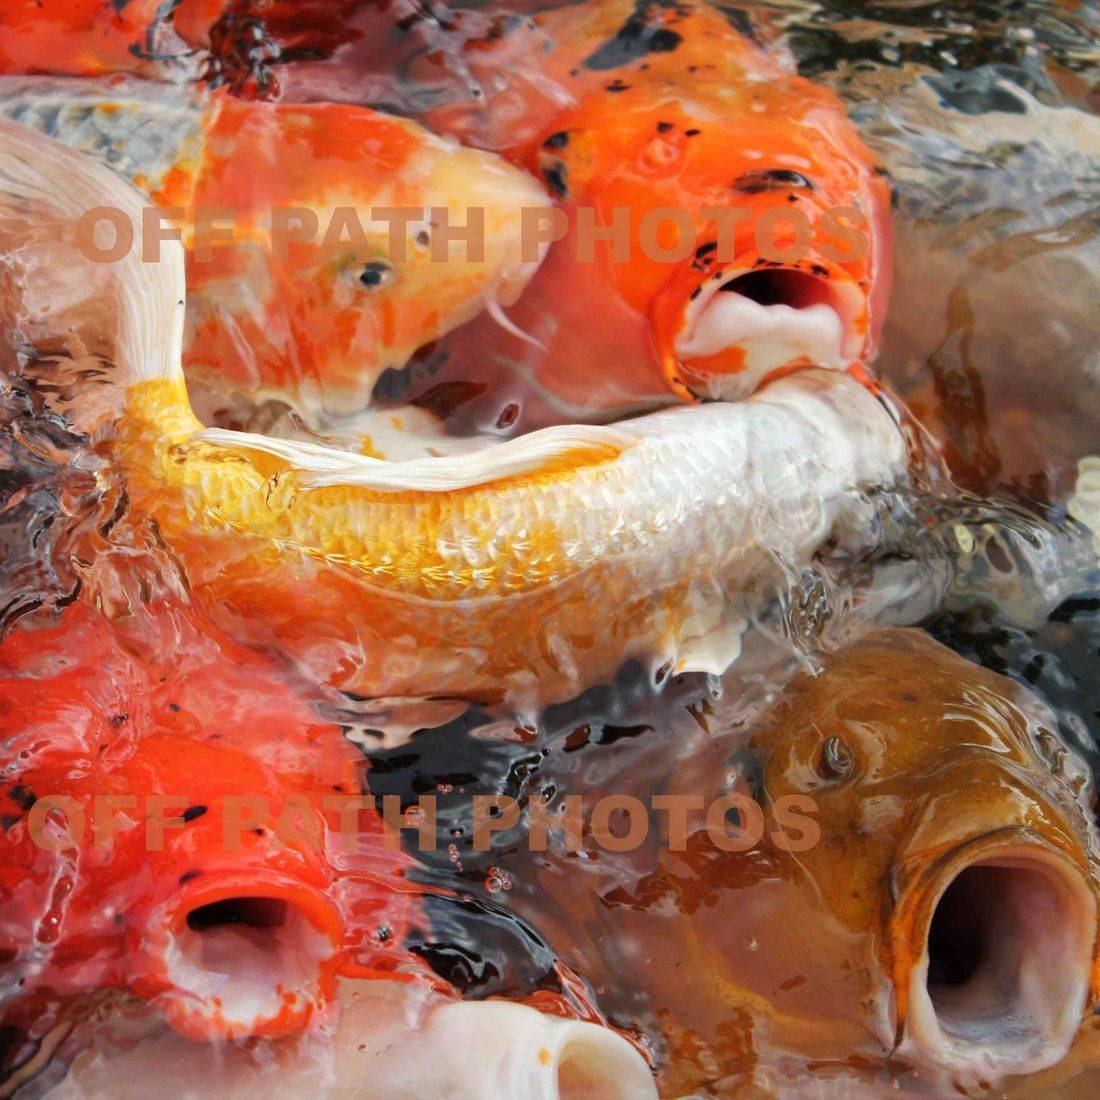 photography, water, pond, food, hungry, animal, relax, coy fish, friendly